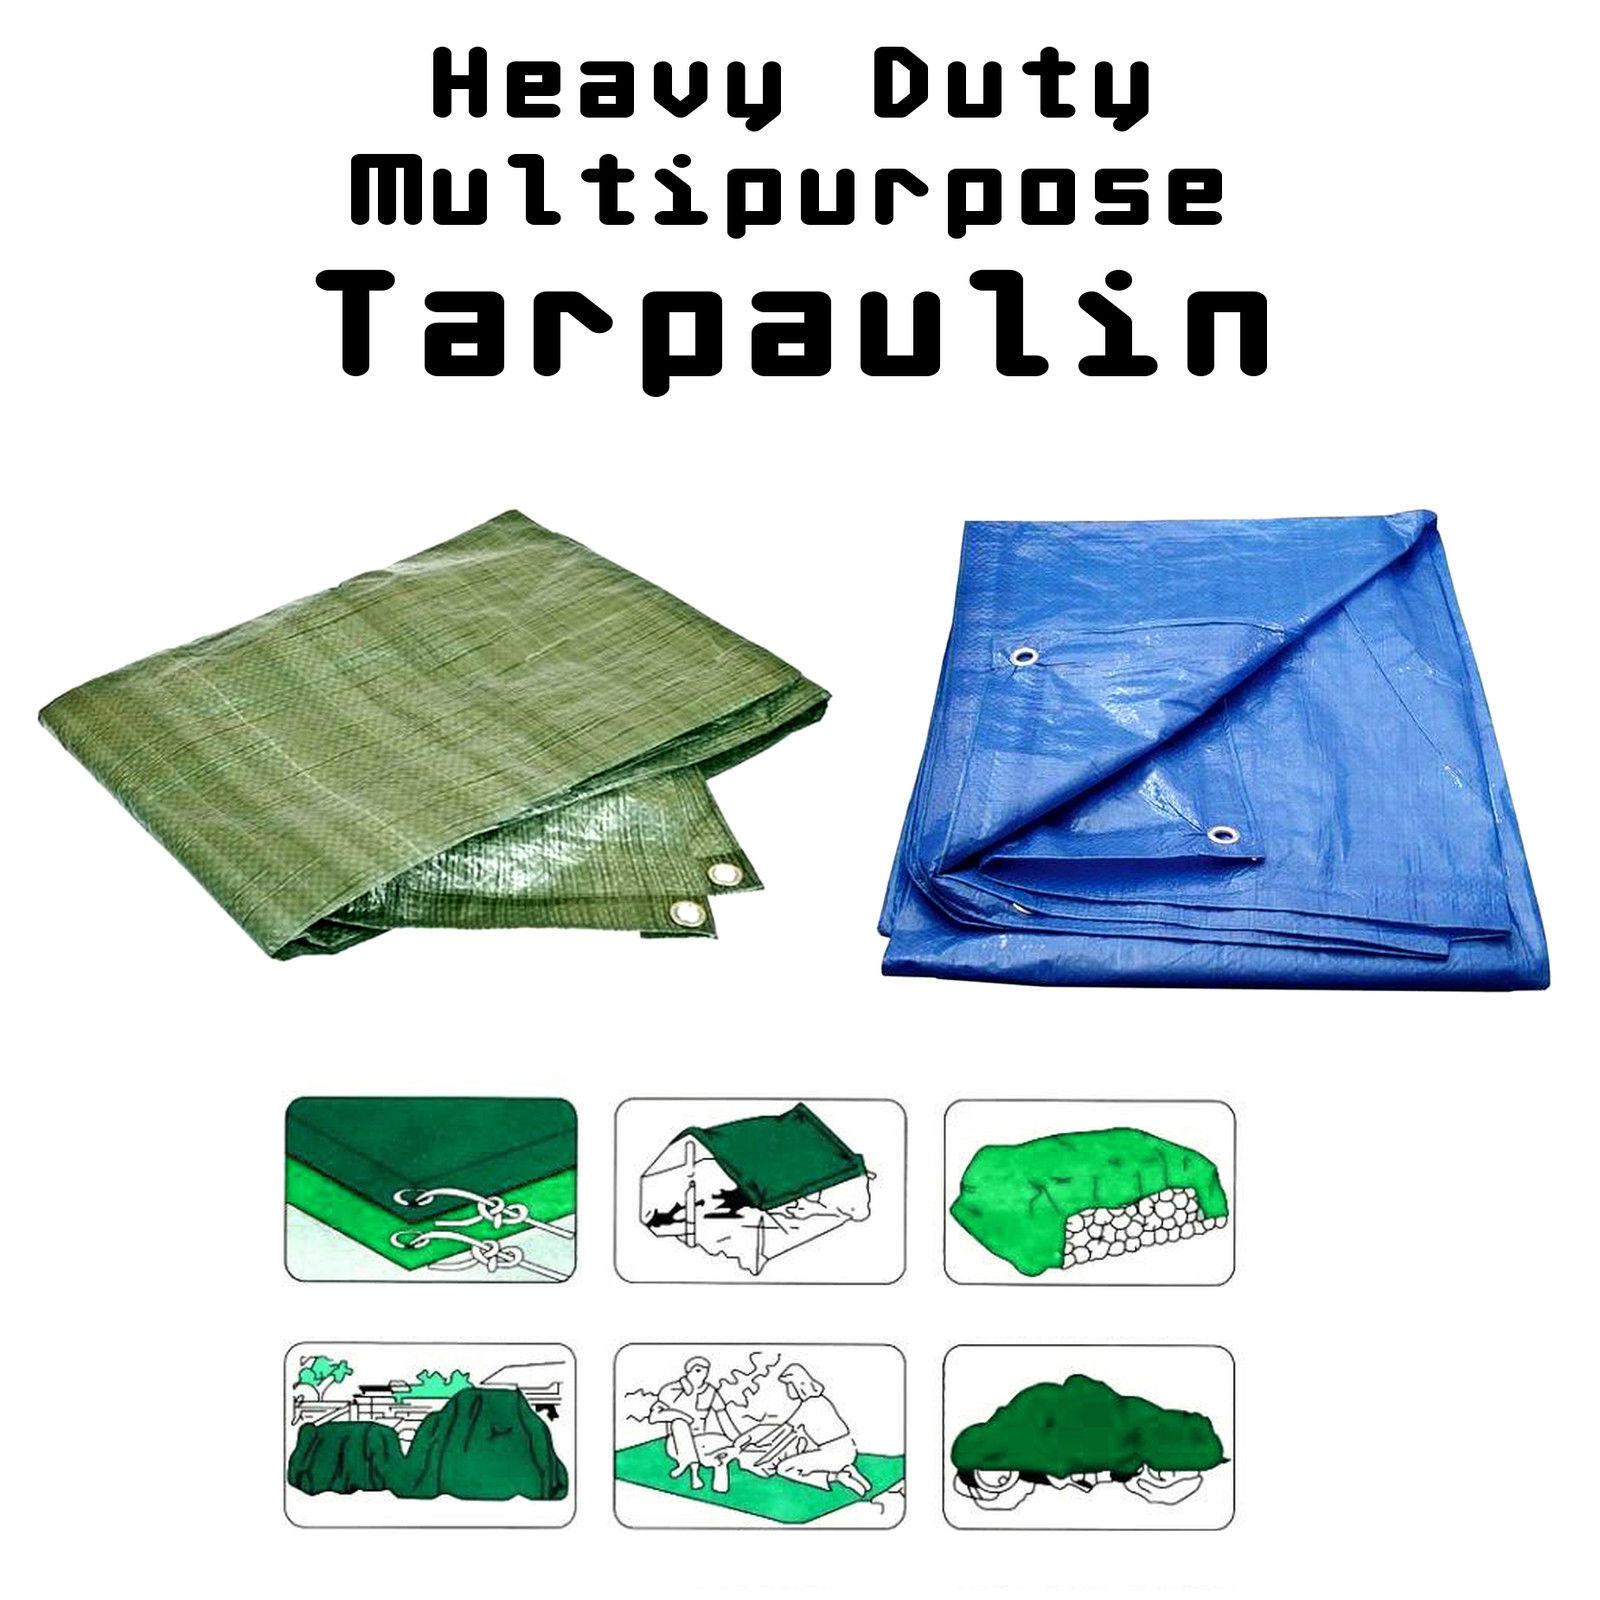 Heavy Duty Waterproof Tarpaulin Größes Strong Ground Sheet Cover Tarp - Choice of Größes Tarpaulin a981d5